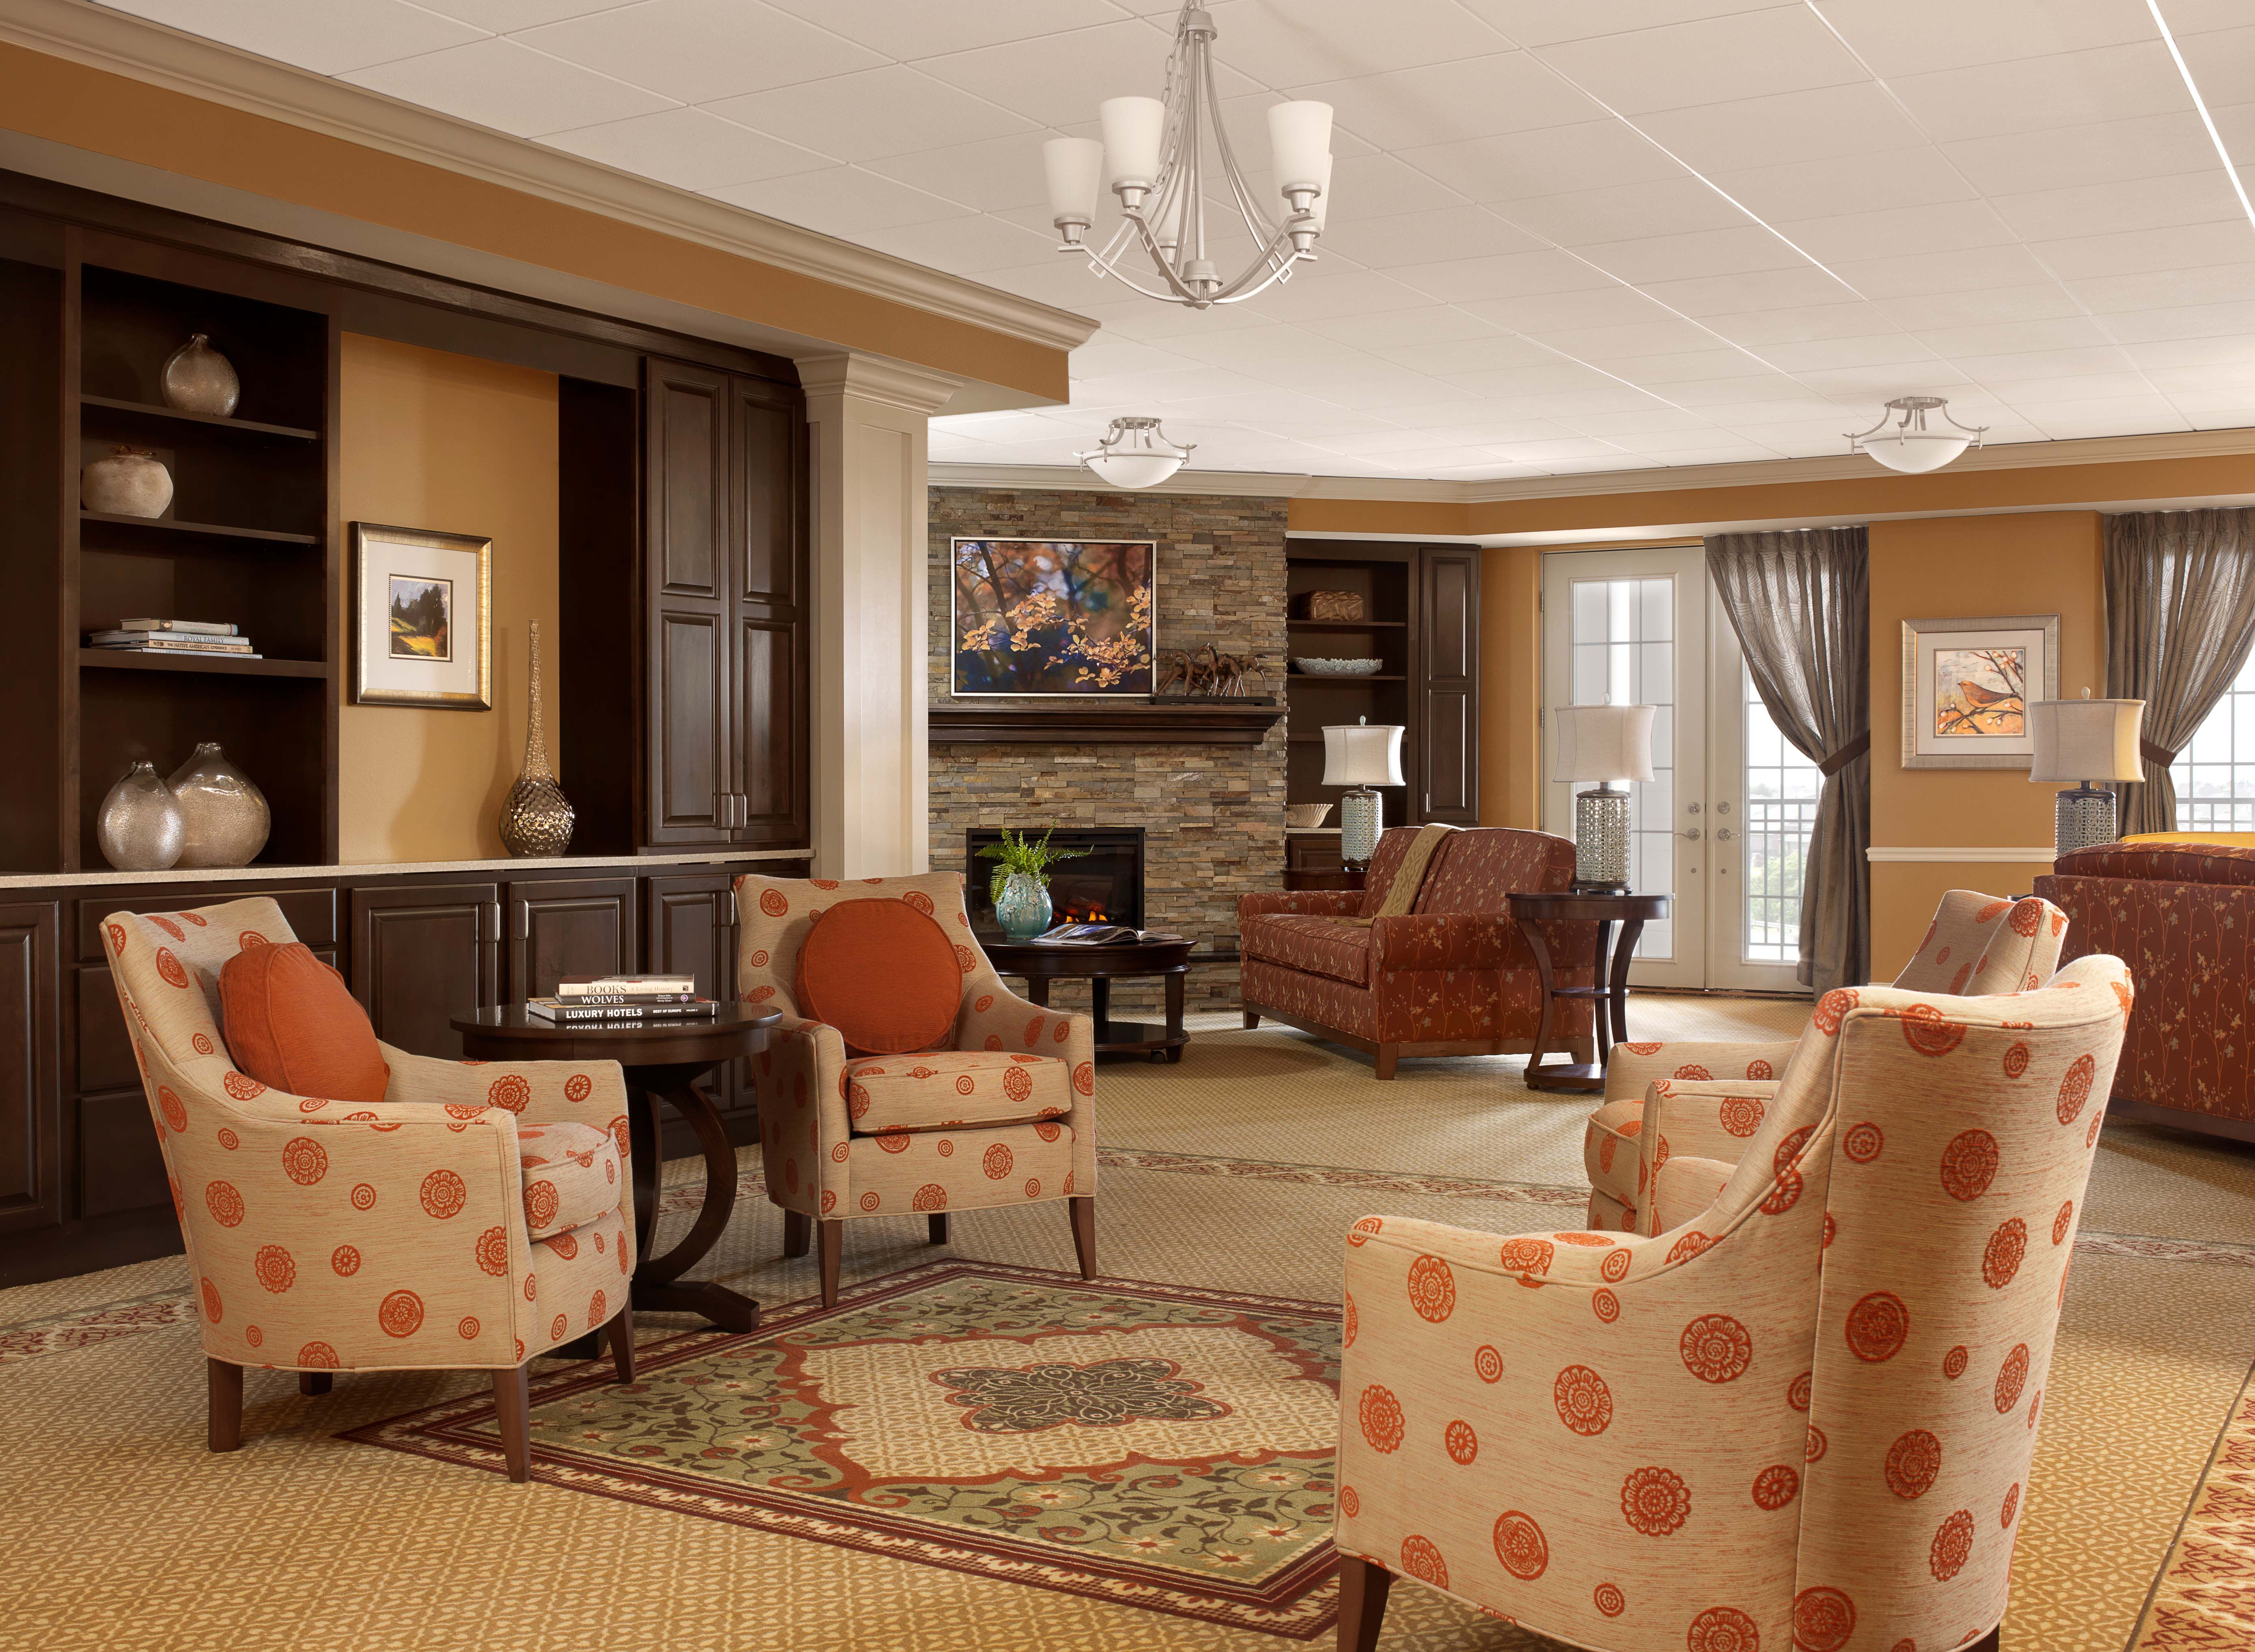 assisted living apartments - HD5556×4071